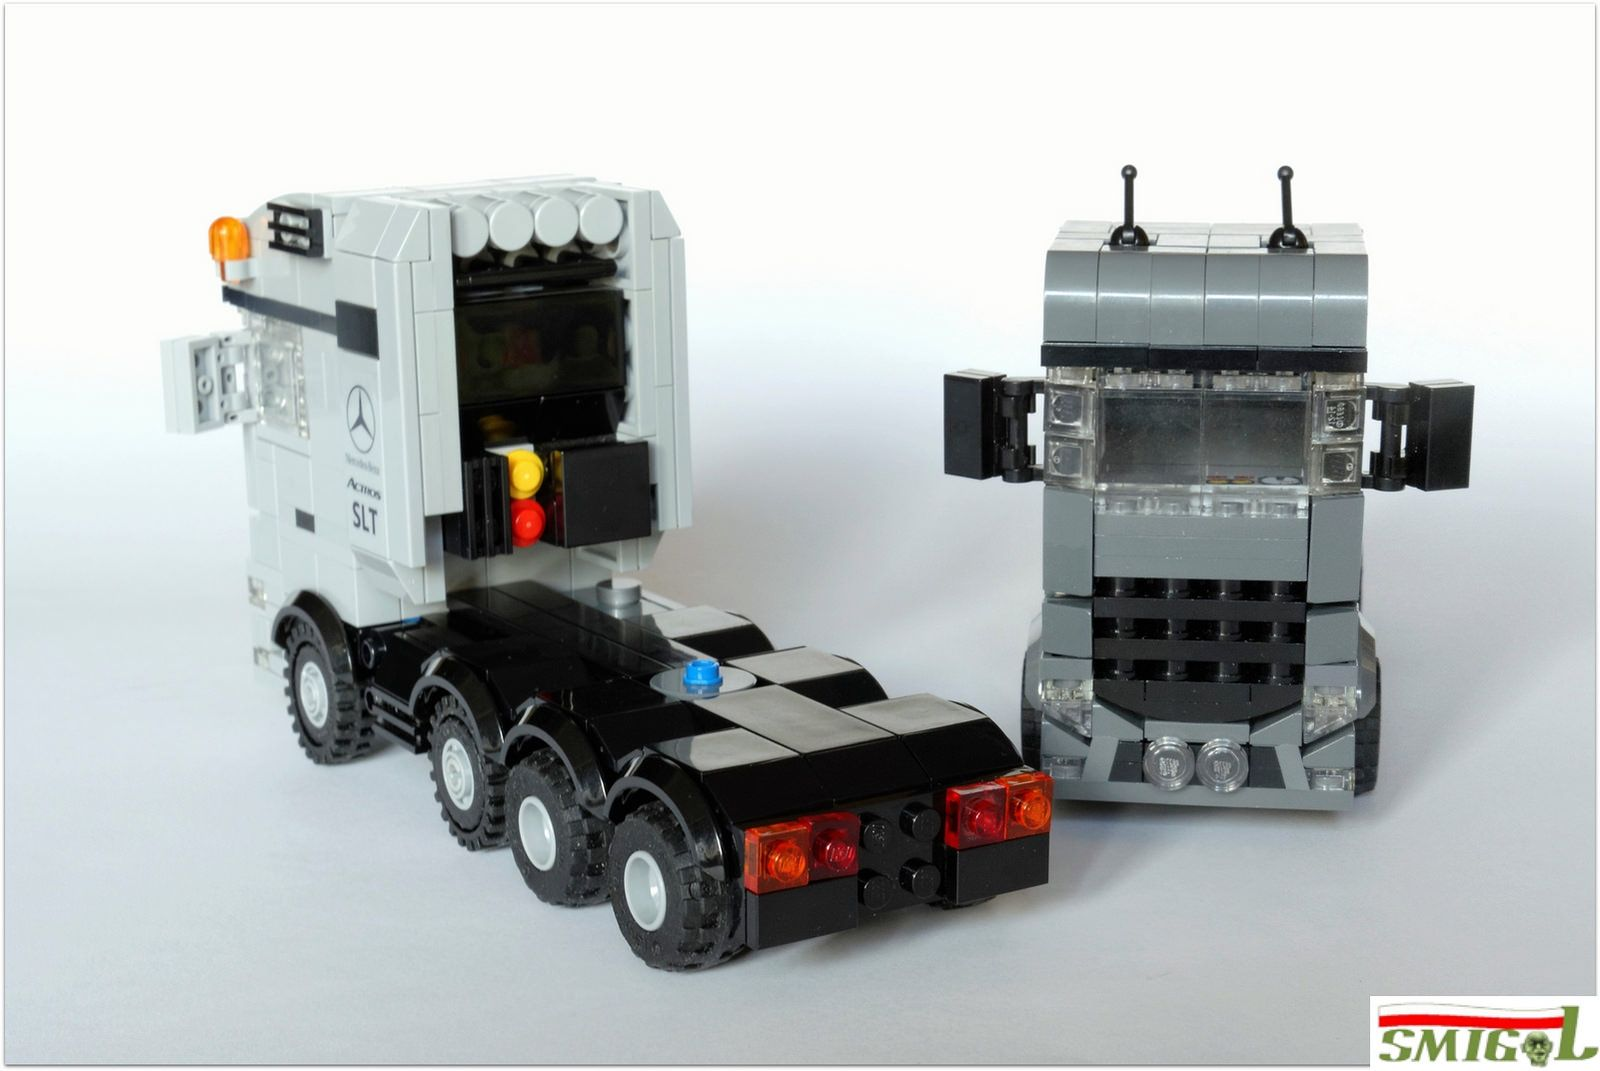 2legoornot2lego s pages bricksafe - Mercedes Actros Mp4 Slt By Smigol_